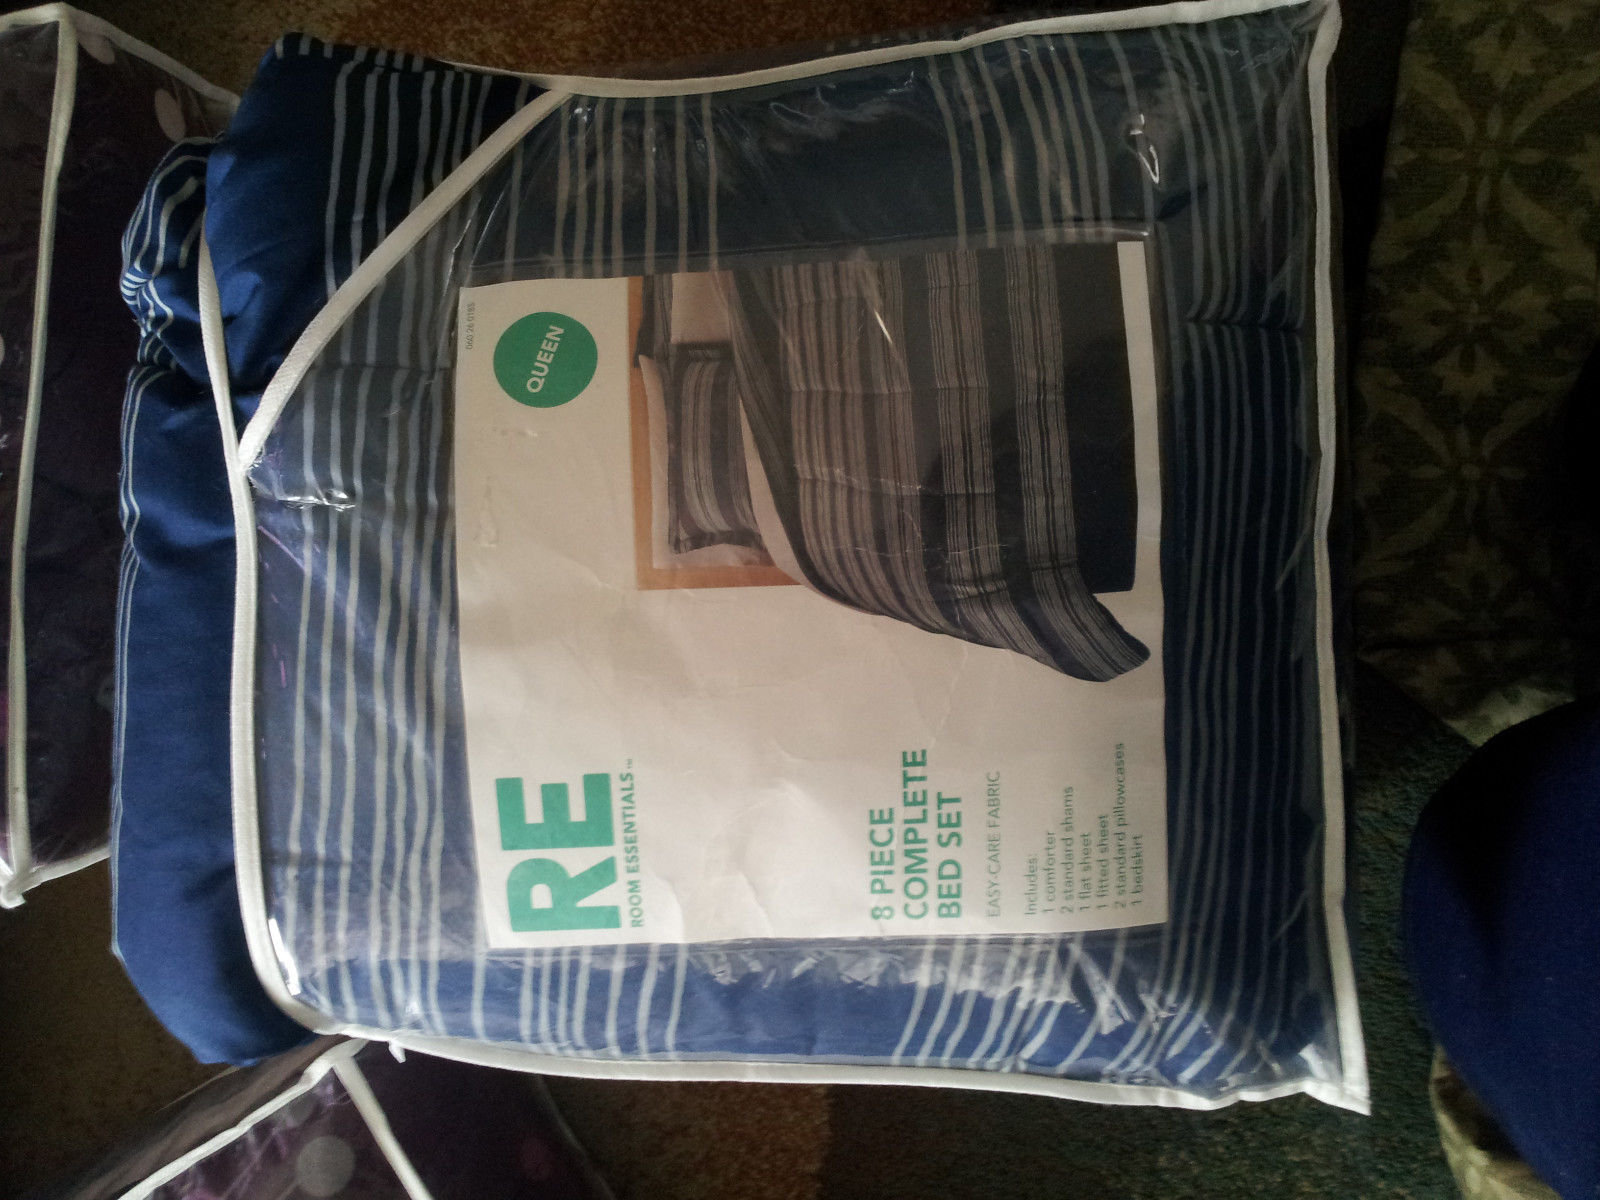 Room Essentials Blue and Gray Stripes Queen Size 8 Piece Bedding Set - $70.00